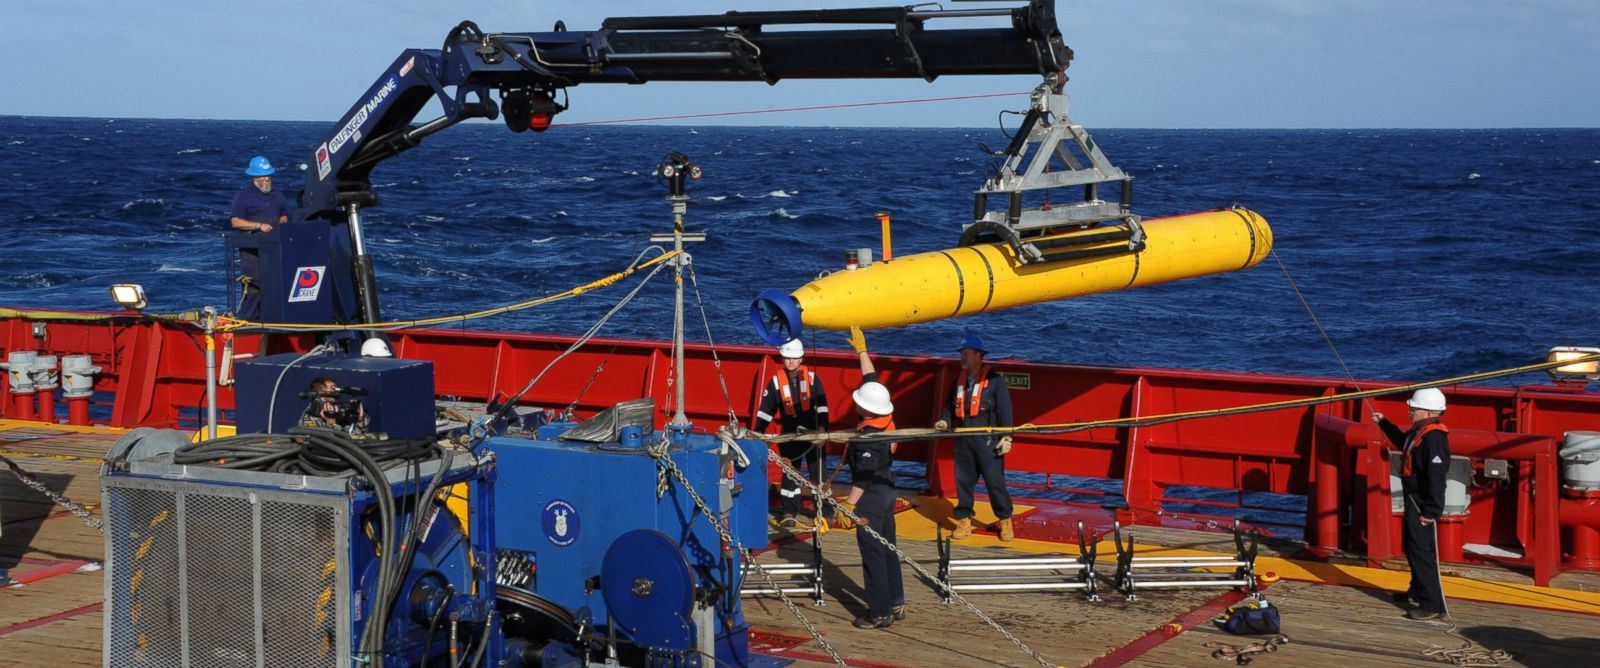 PHOTO: In this handout image provided by the U.S. Navy, The Bluefin 21, Artemis autonomous underwater vehicle (AUV) is hoisted back on board the Australian Defense Vessel Ocean Shield after successful buoyancy testing April 1, 2014 in the Indian Ocean.